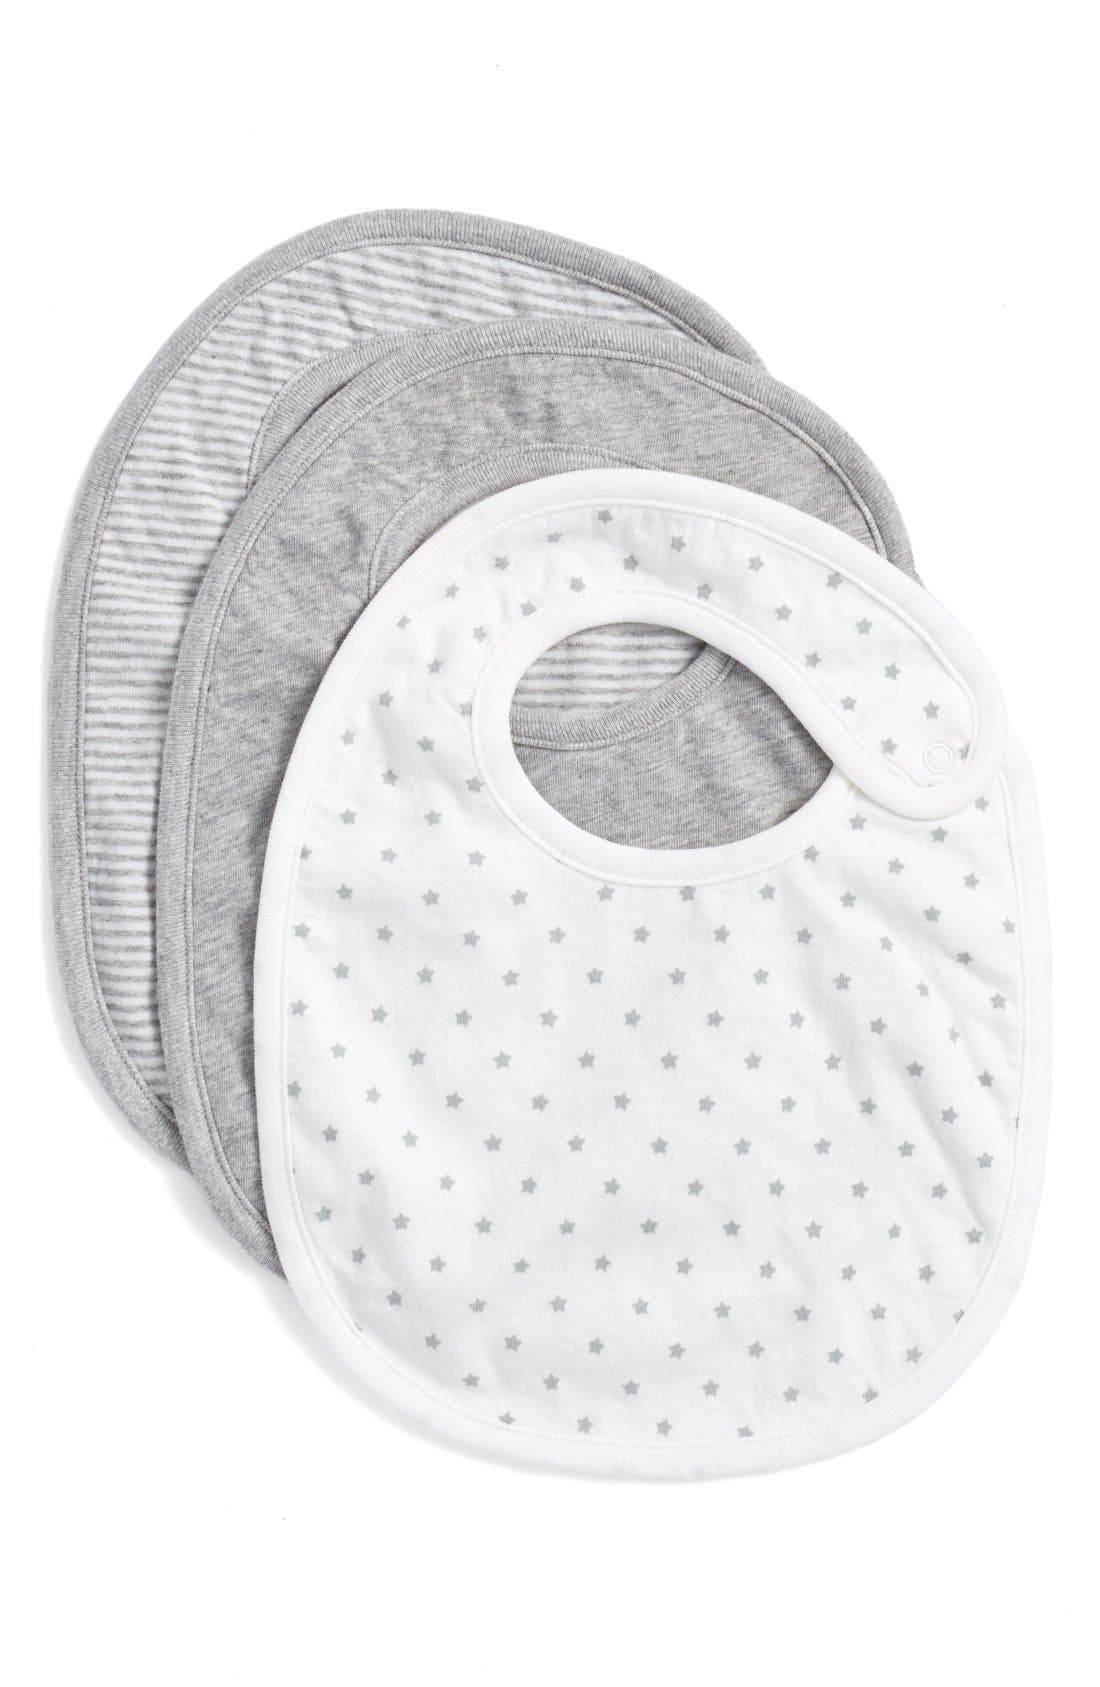 NORDSTROM BABY, Snap Bibs, Main thumbnail 1, color, GREY ASH HEATHER PACK